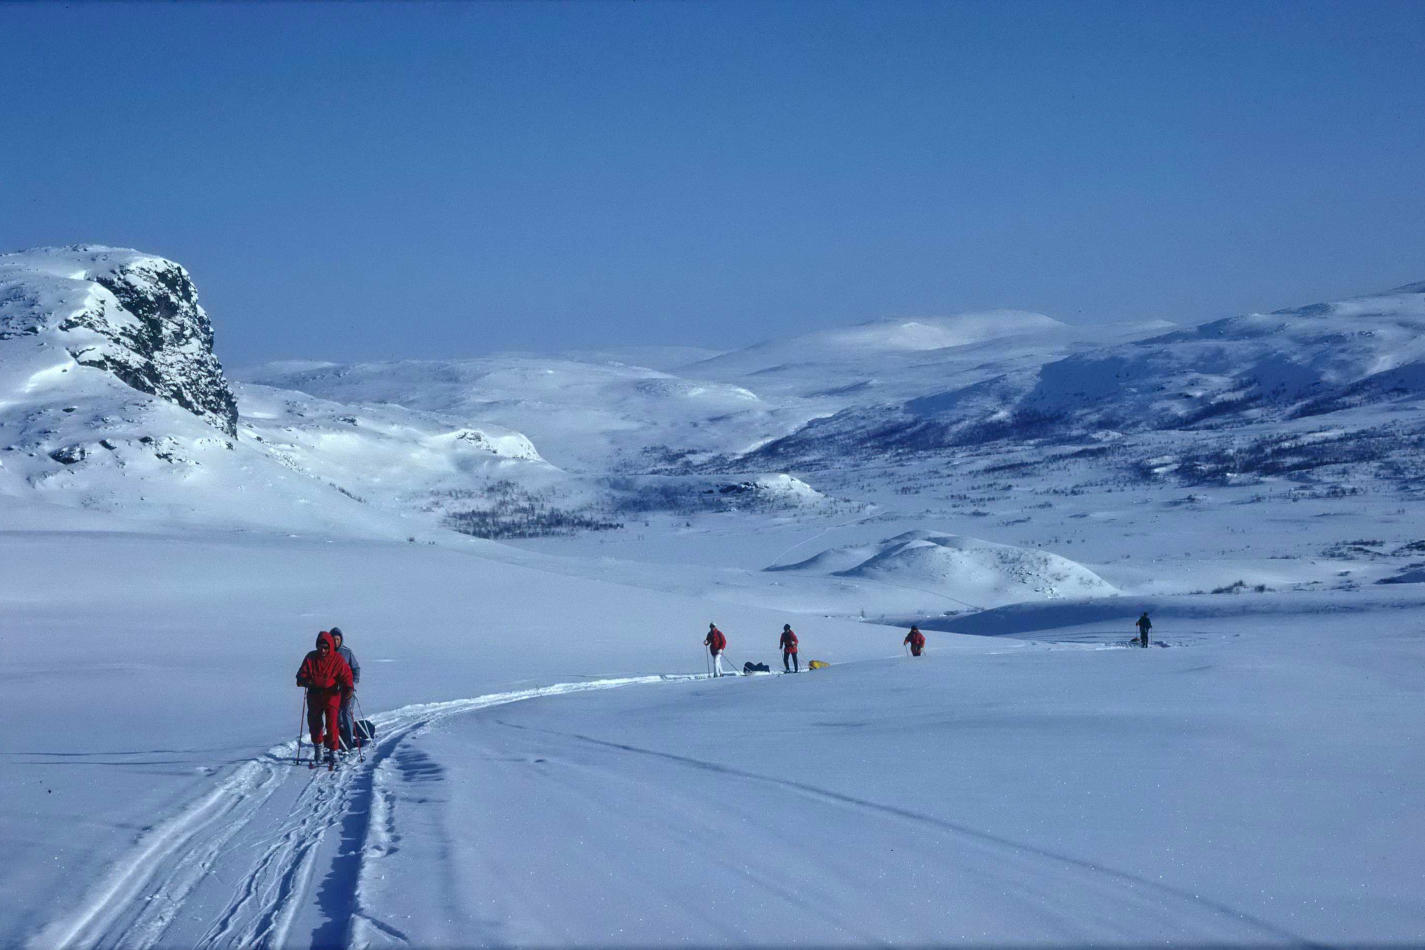 Clear skies over the tundra: Tundrea – a gateway to the beautiful North - Scan Magazine